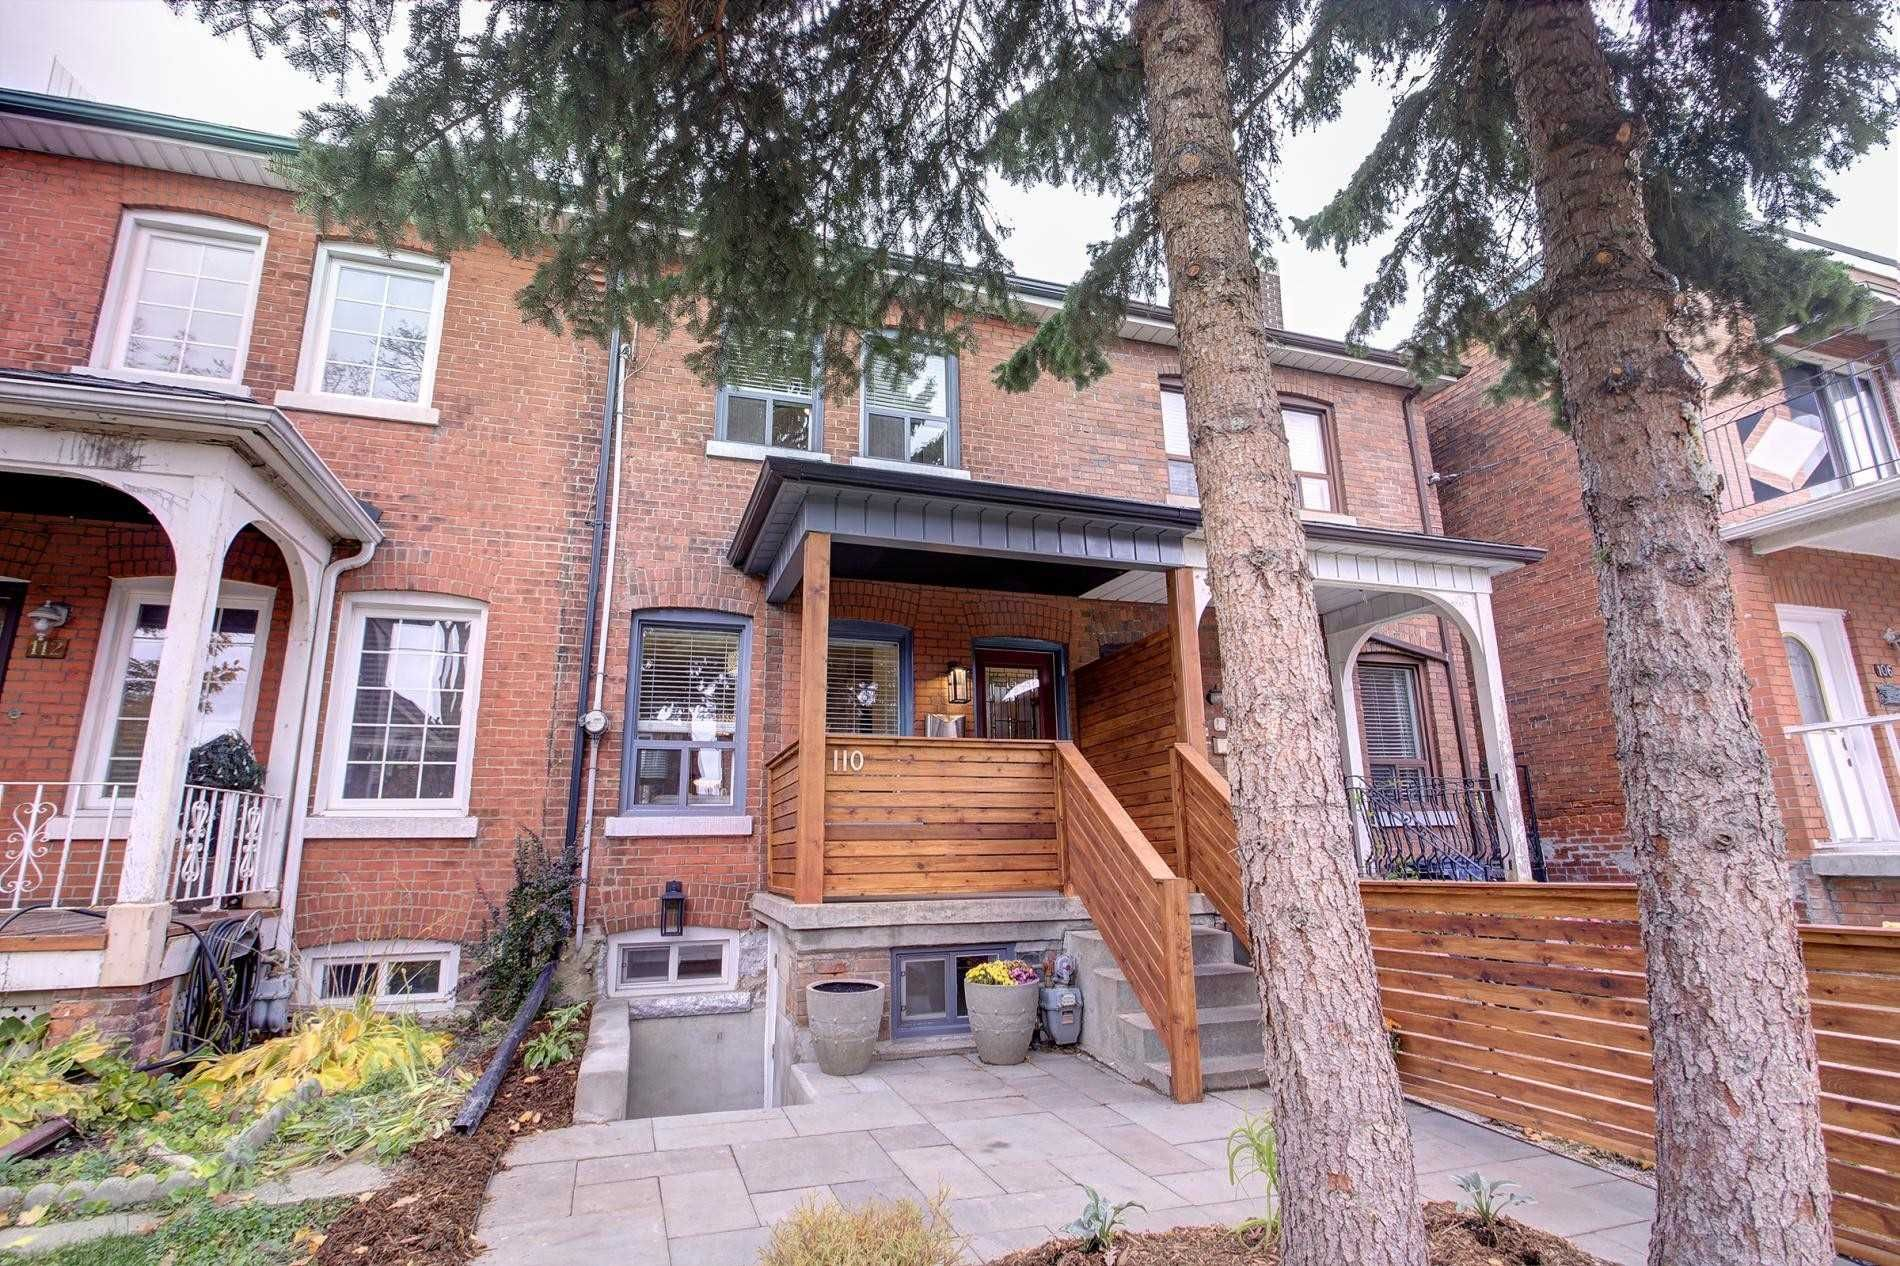 Main Photo: 110 Armstrong Avenue in Toronto: Dovercourt-Wallace Emerson-Junction House (2-Storey) for sale (Toronto W02)  : MLS®# W4970076